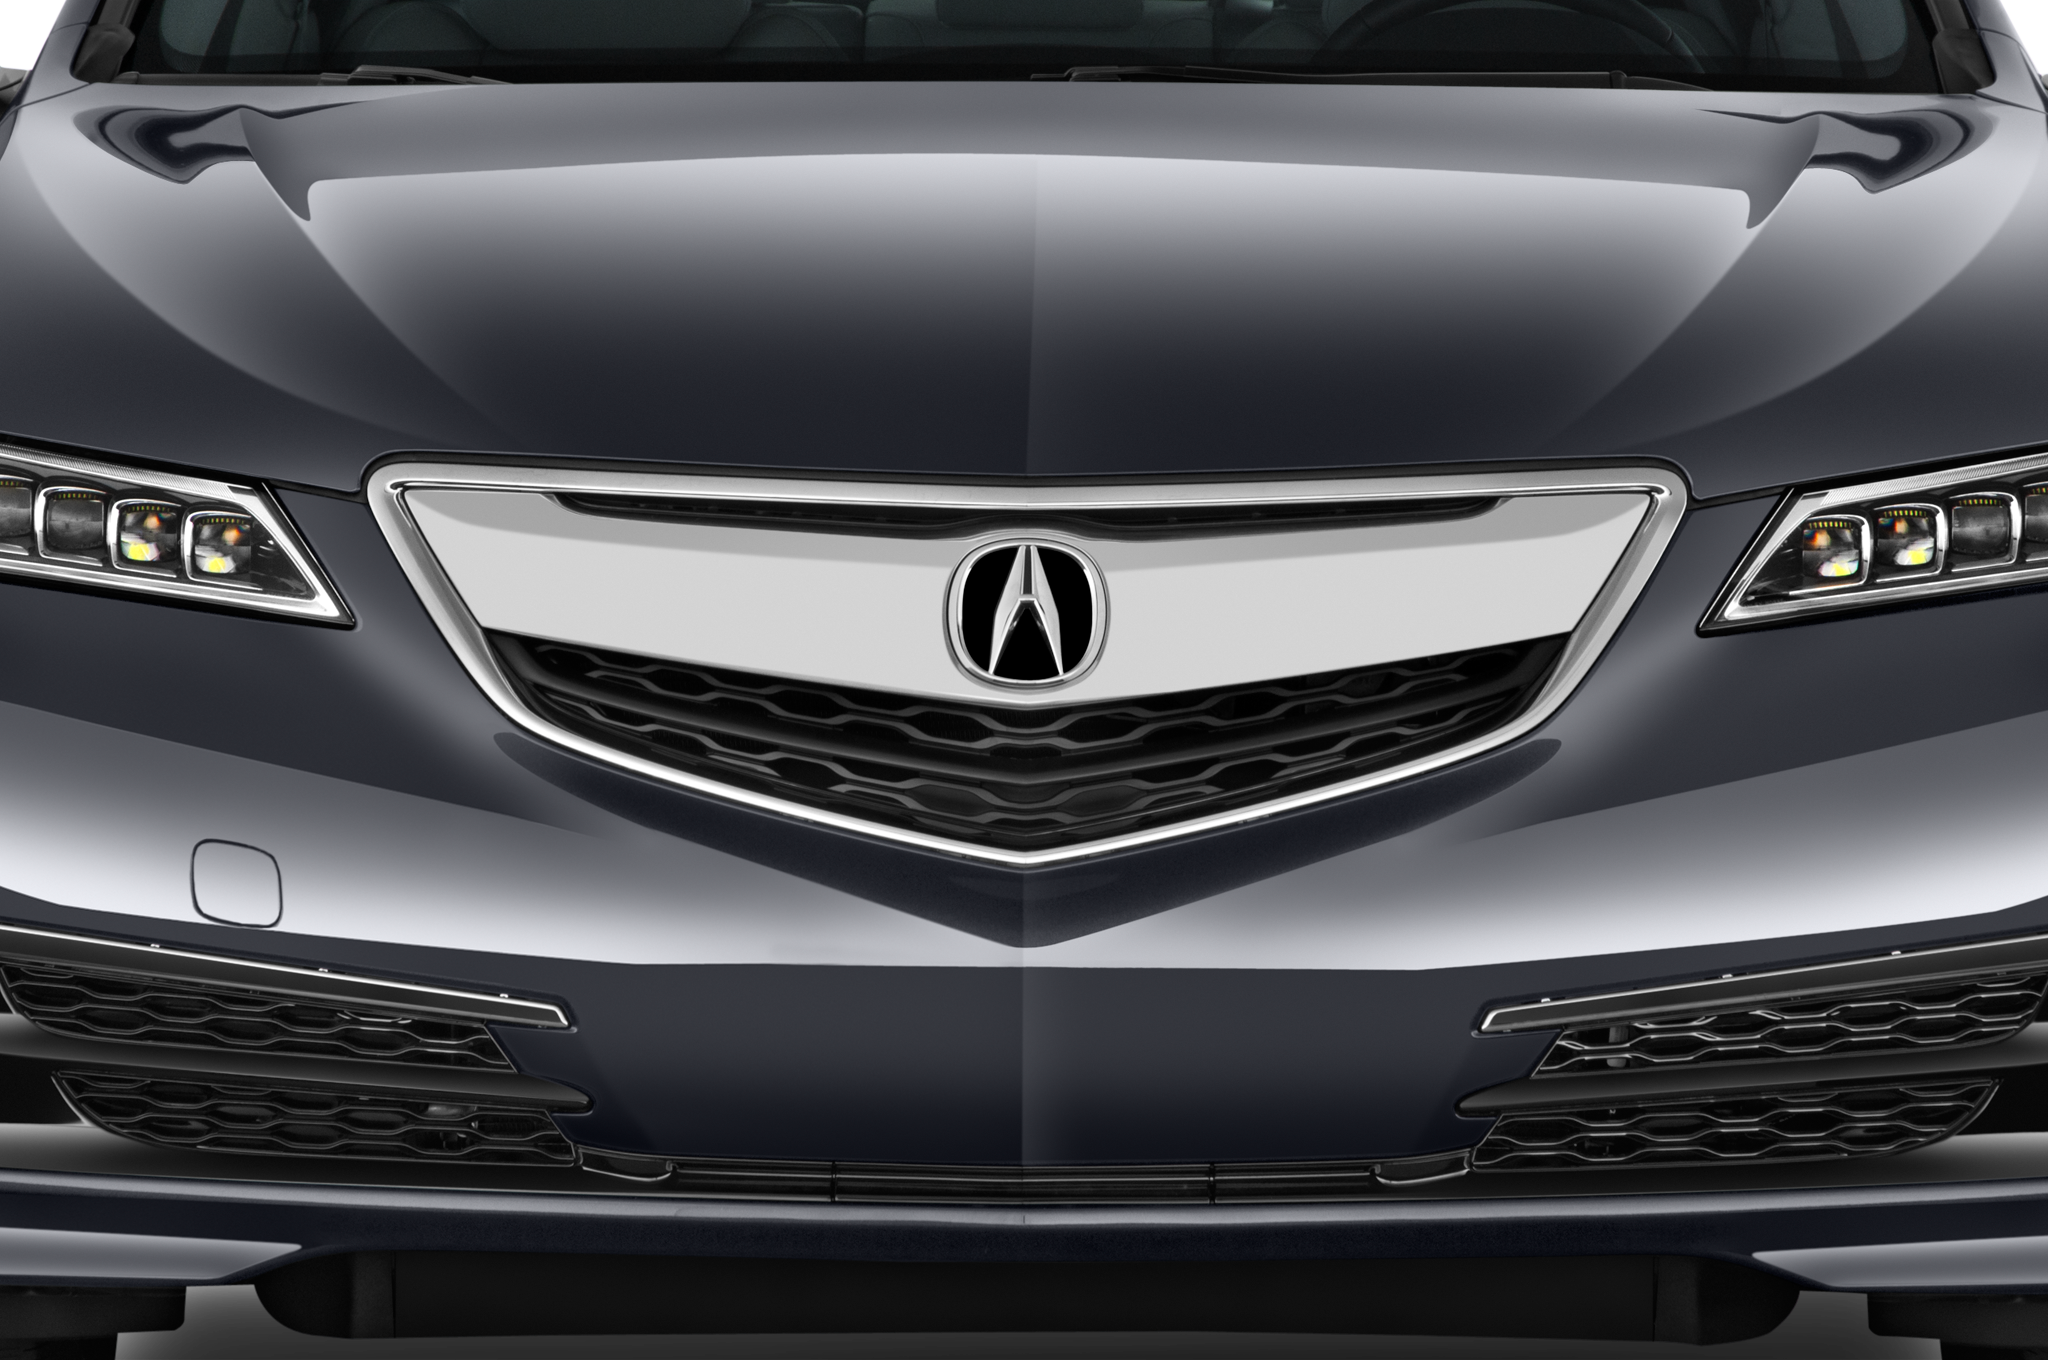 Acura TLX SHAWD One Week Review Automobile Magazine - 2018 acura tsx front grill